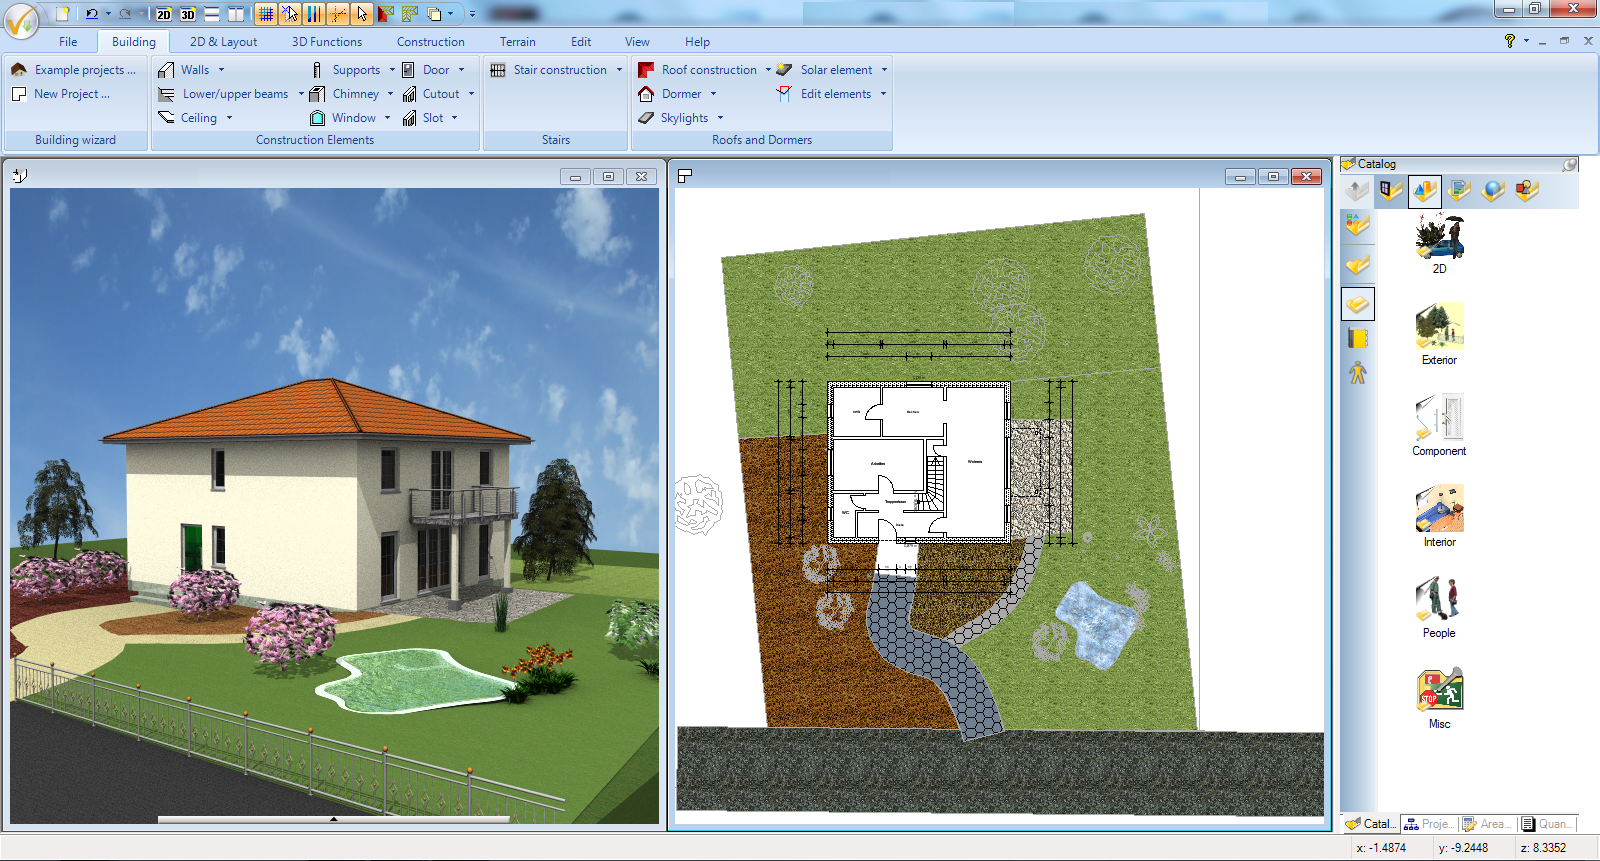 Ashampoo 3d Cad Architecture 5 Design One Room Or An Entire Mansion Plus Gardens With This Powerful Tool